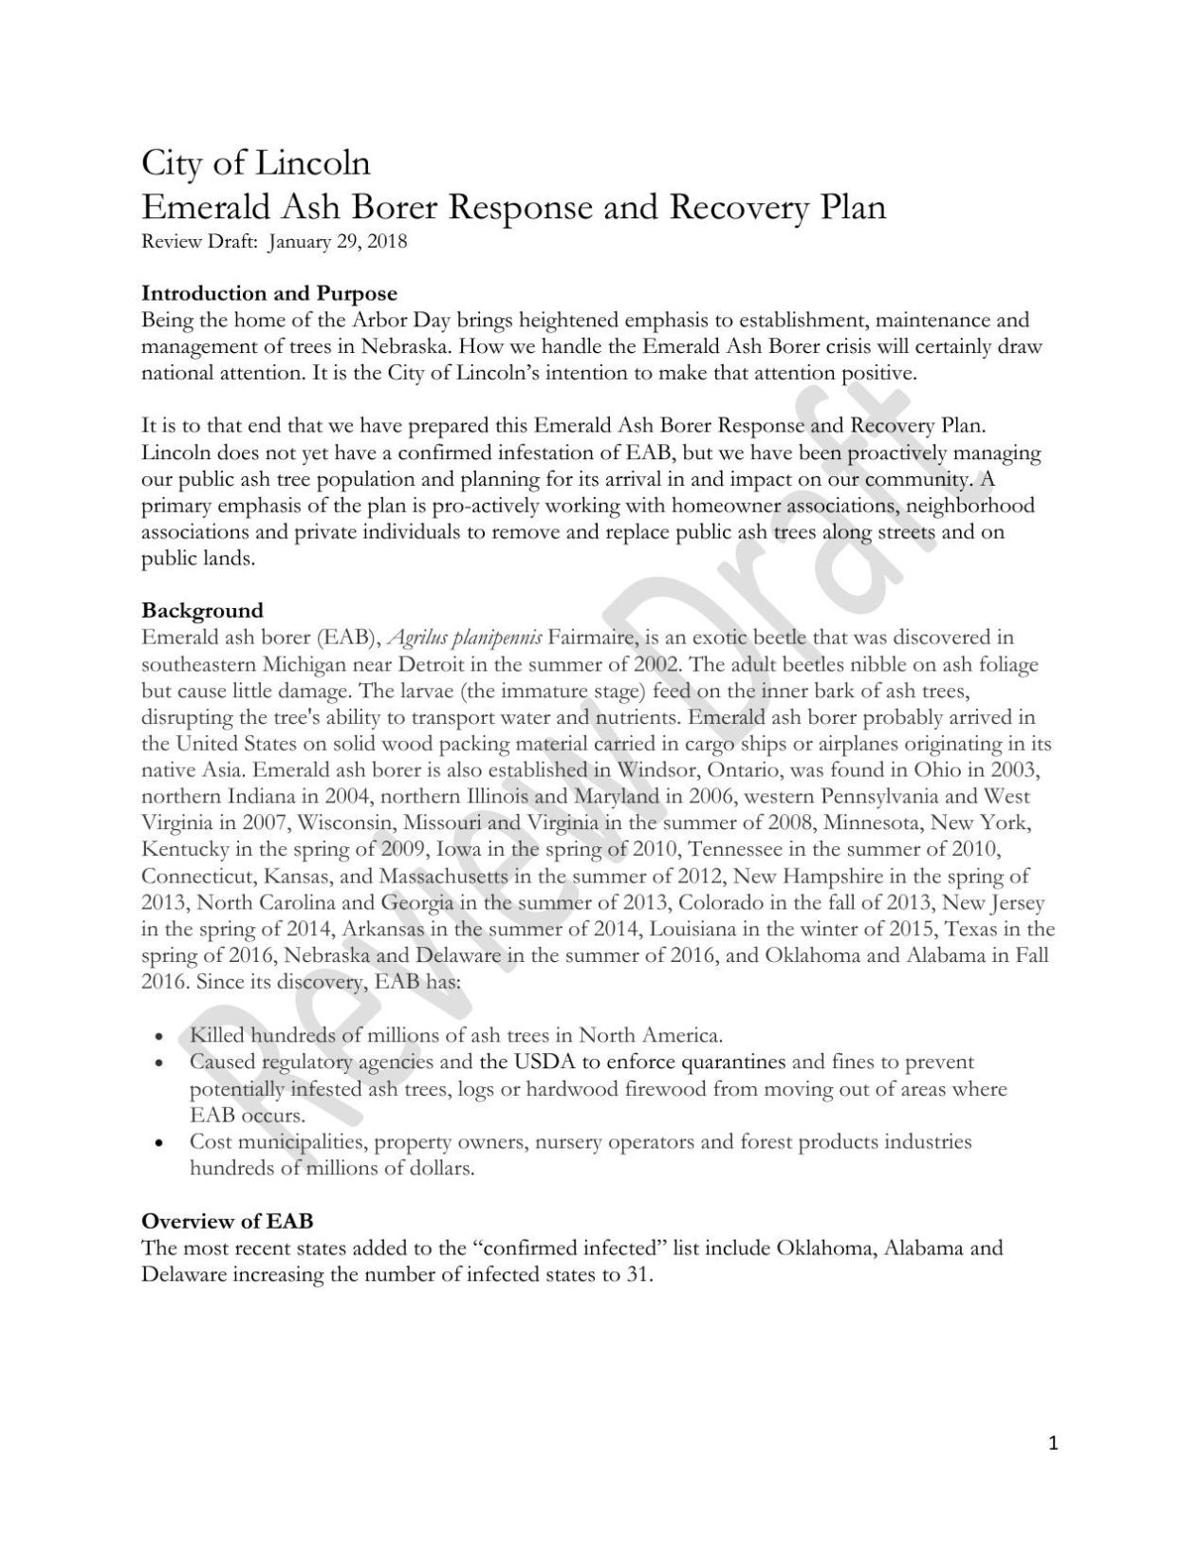 Draft: City of Lincoln Emerald Ash Borer Response and Recovery Plan